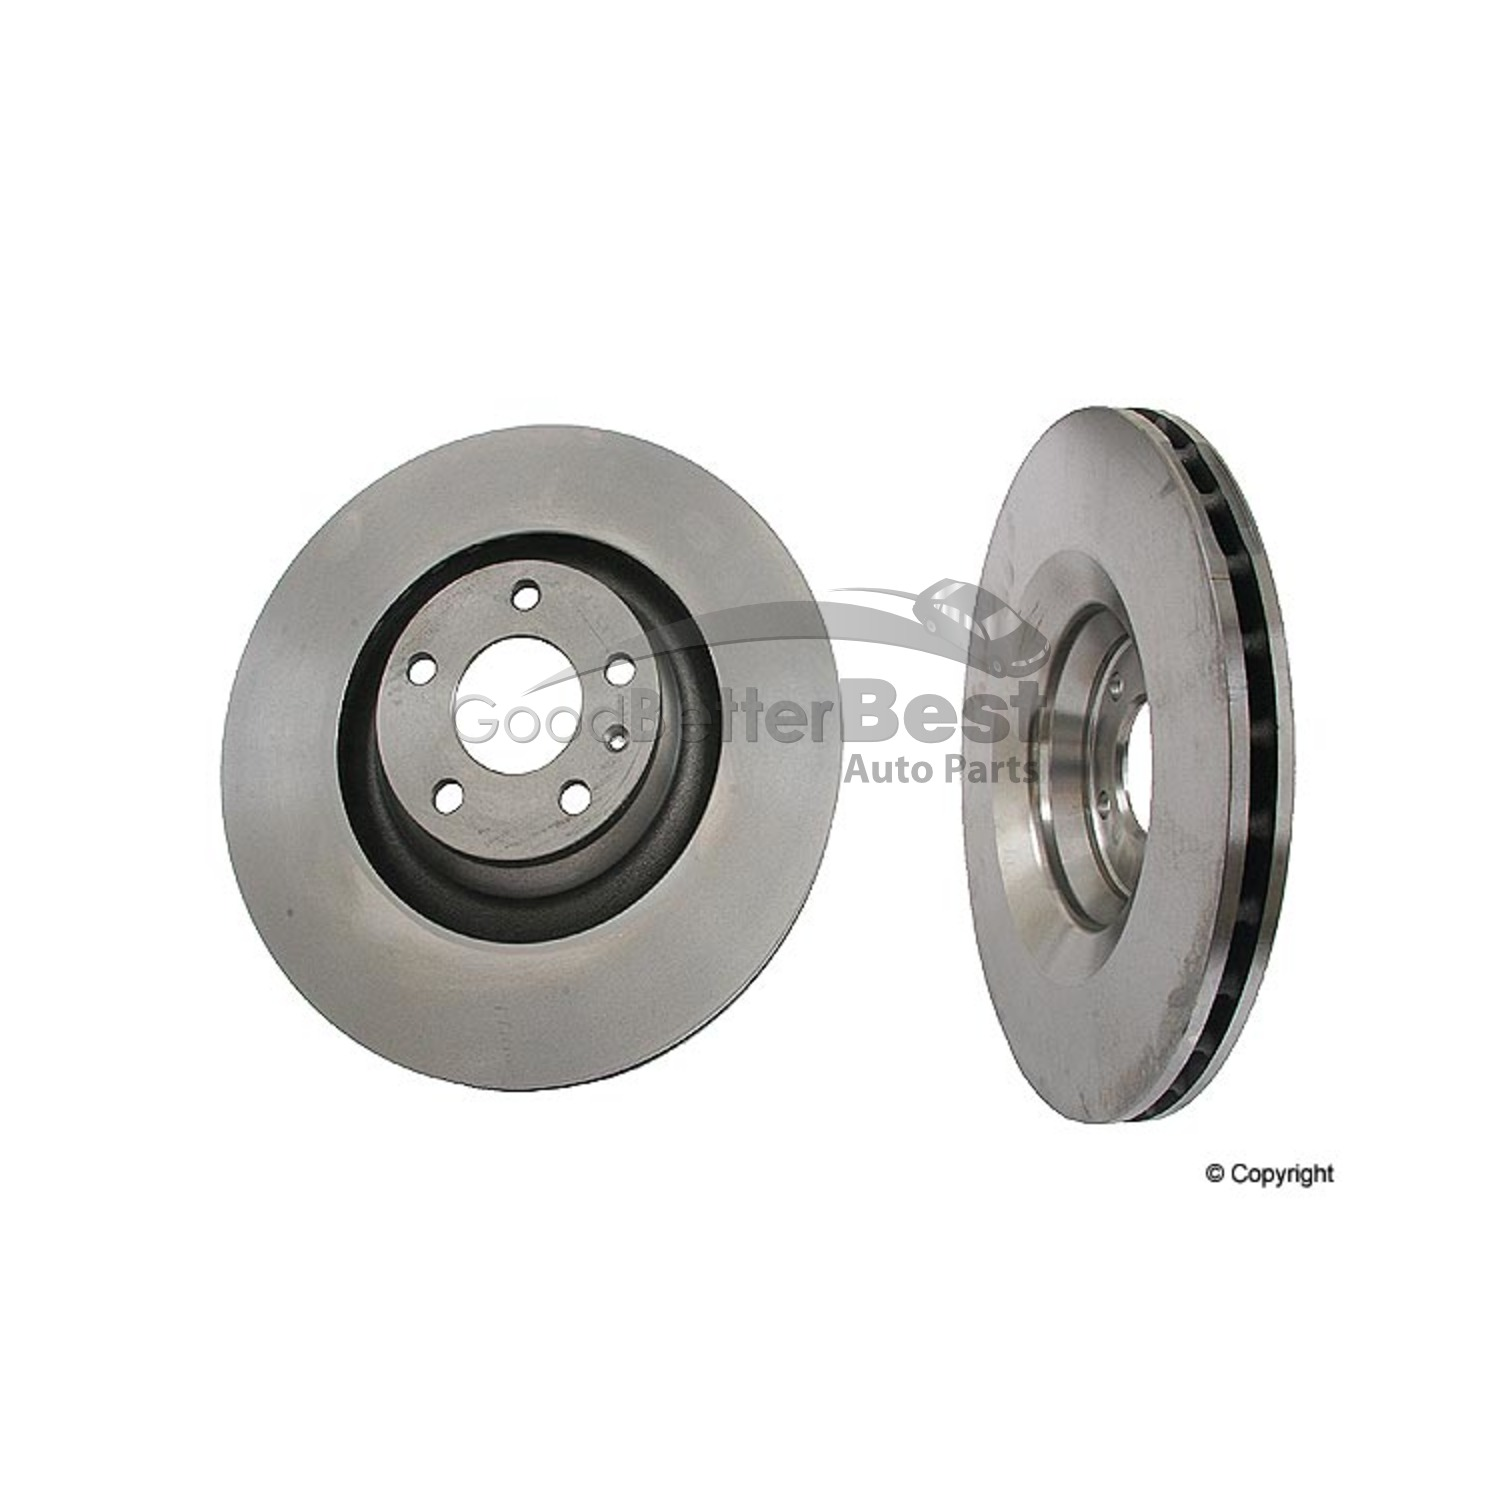 Front Quality 312 mm OE Replacement Quality Brake Disc Rotors For A4 A6